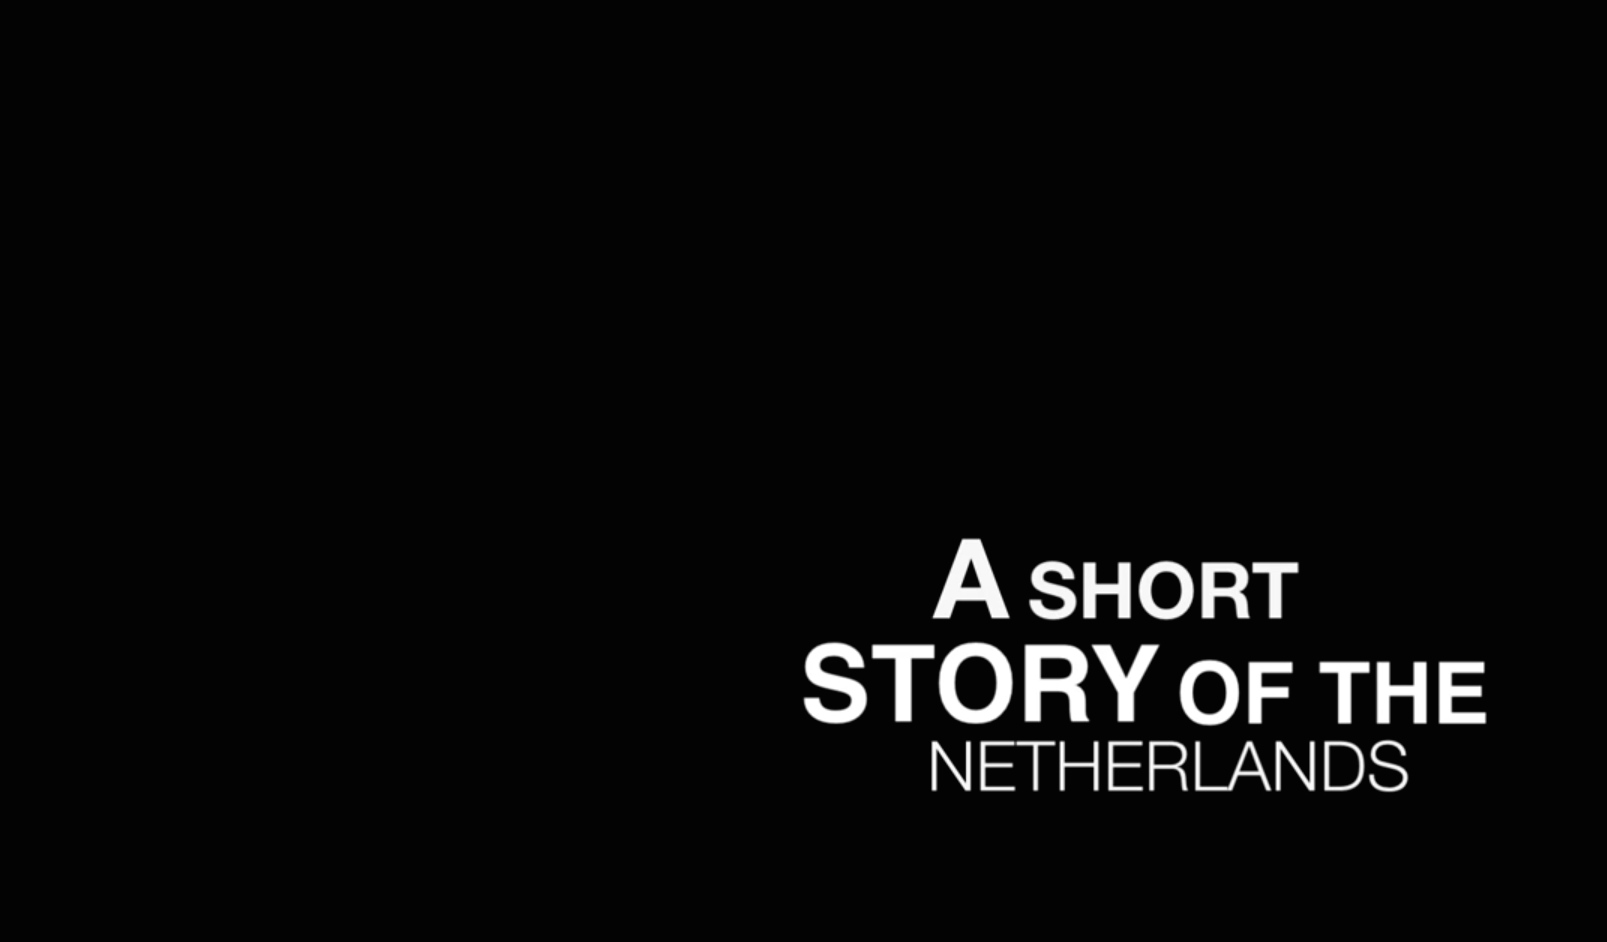 A SHORT STORY OF THE NETHERLANDS